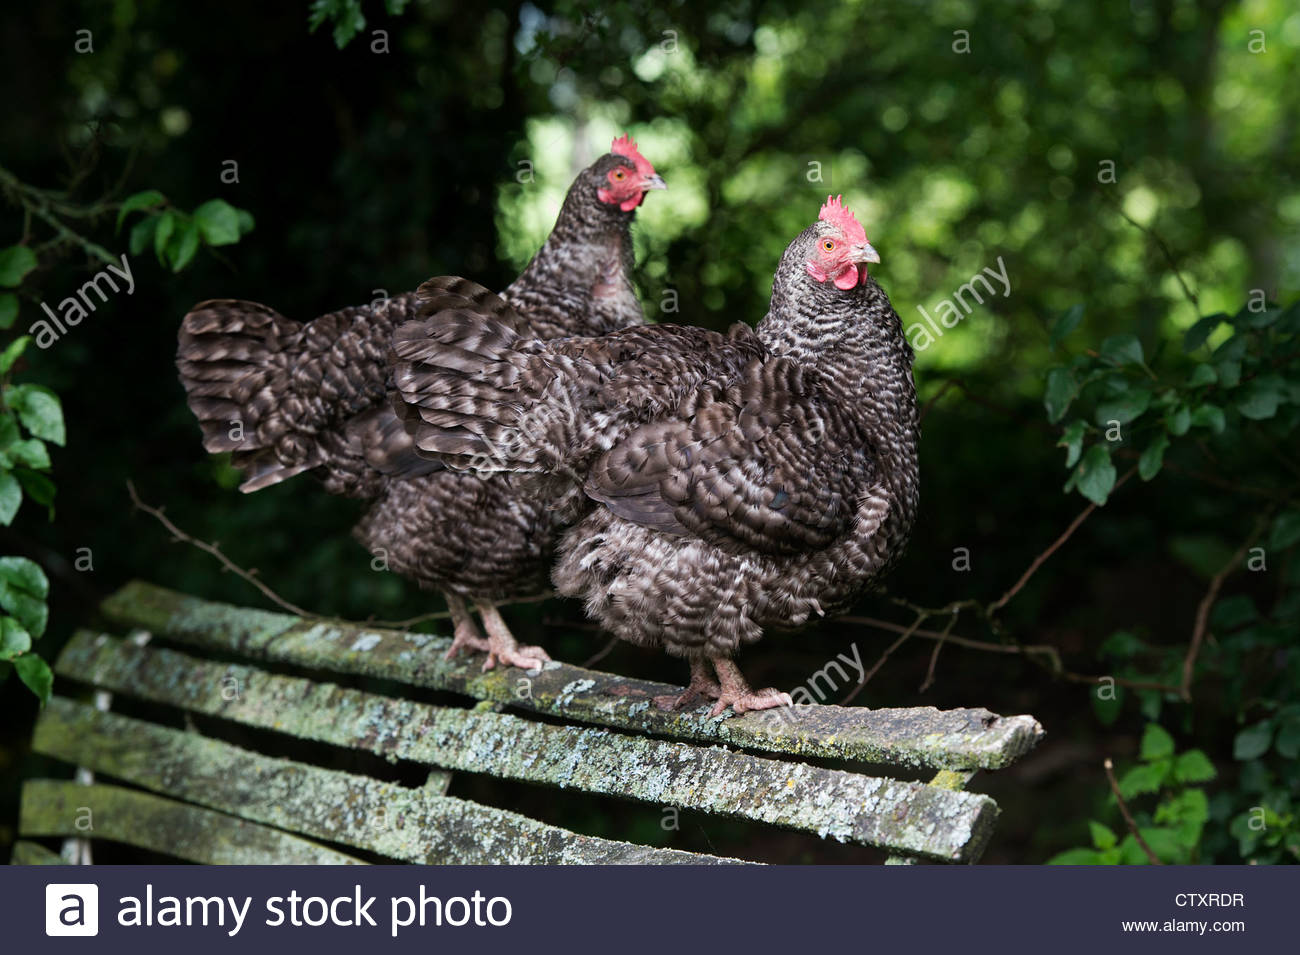 Gallus gallus domestics. Plymouth Rock chickens on an old garden seat - Stock Image